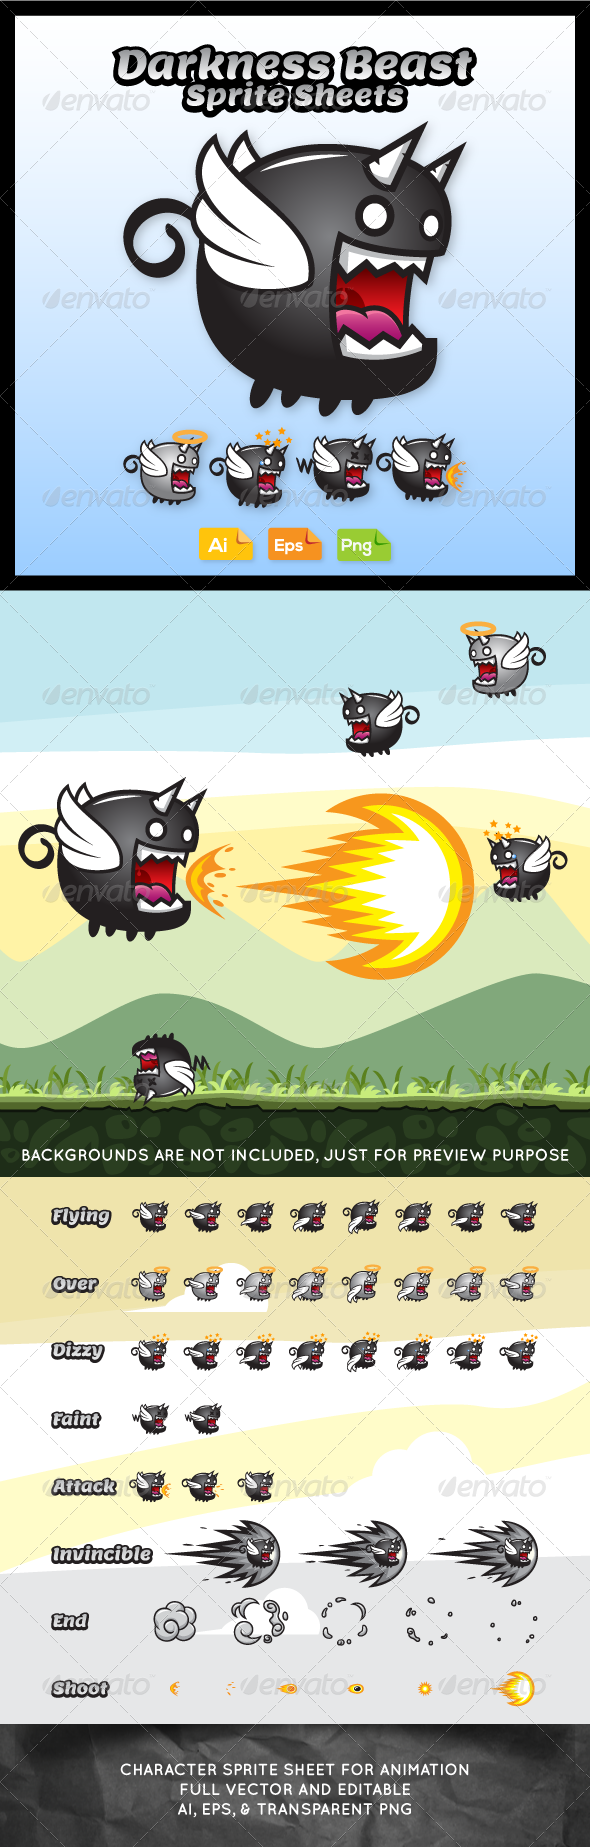 Game Character Darkness Beast Sprite Sheets